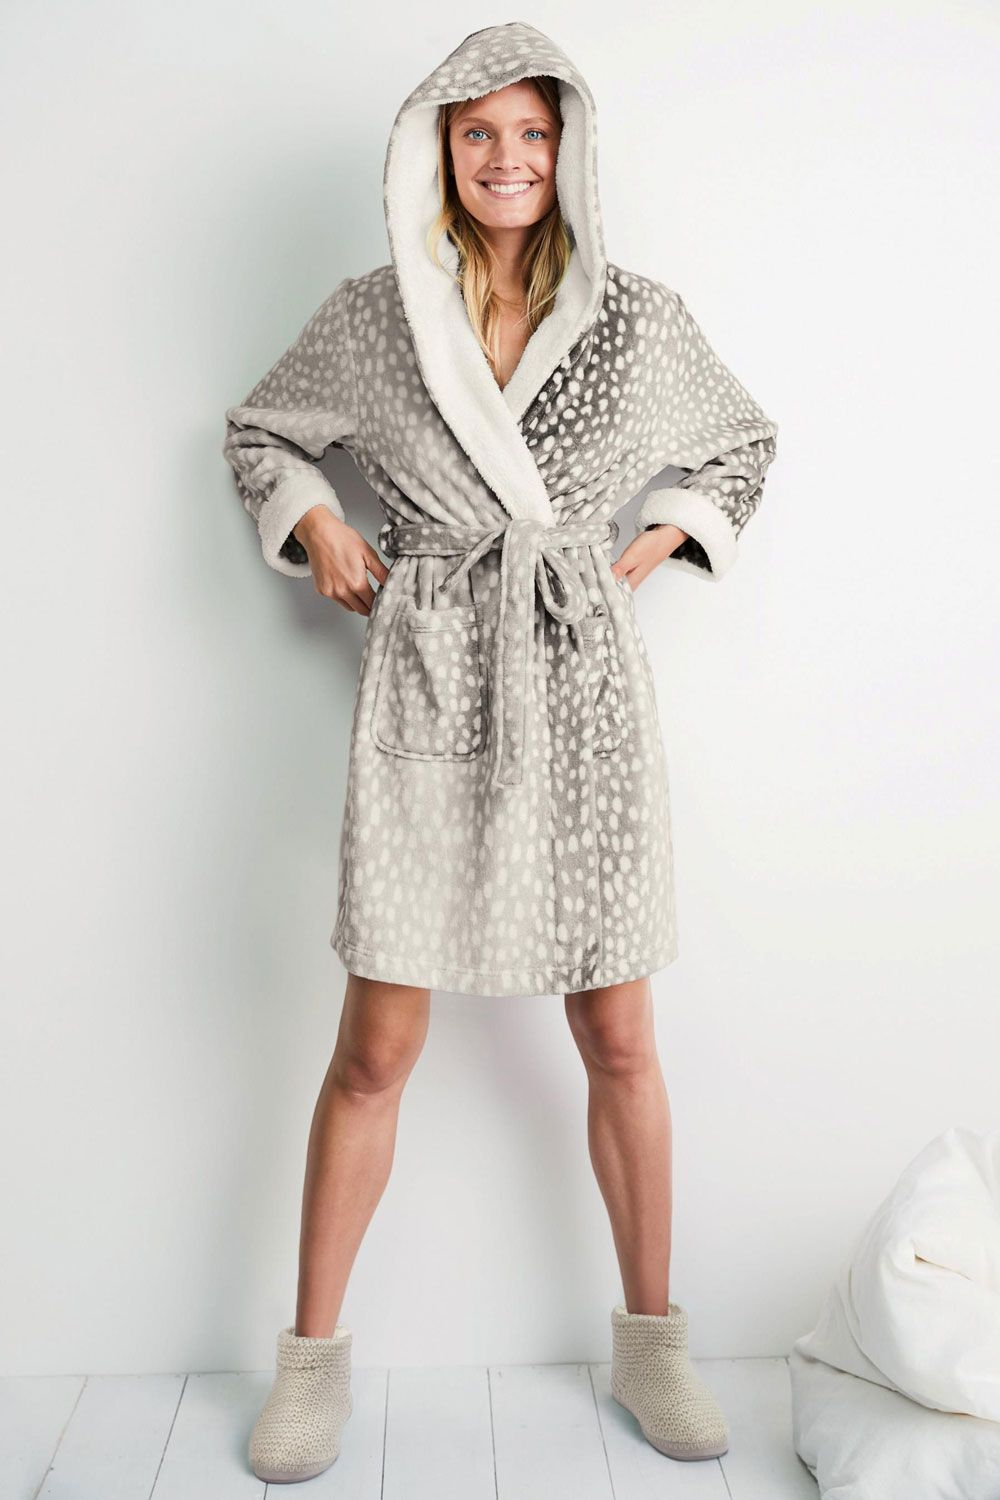 dressing gown - Next